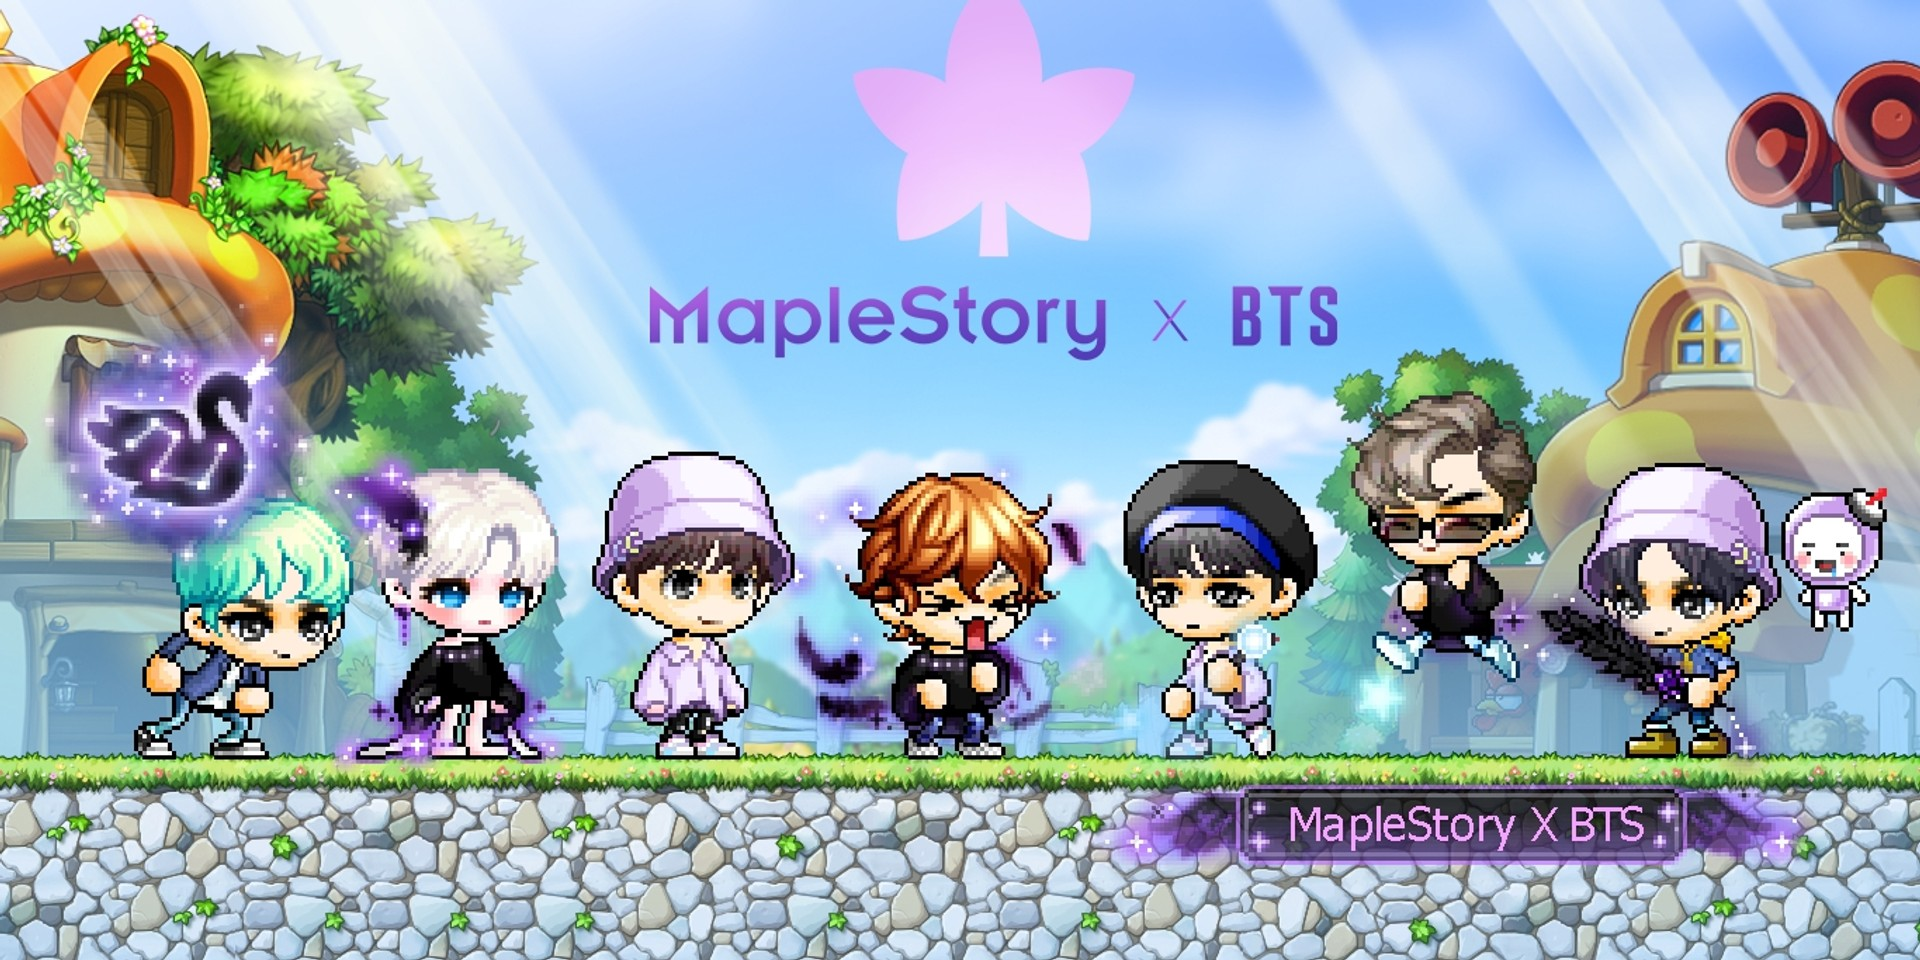 BTS unveil collaboration with online game, MapleStory